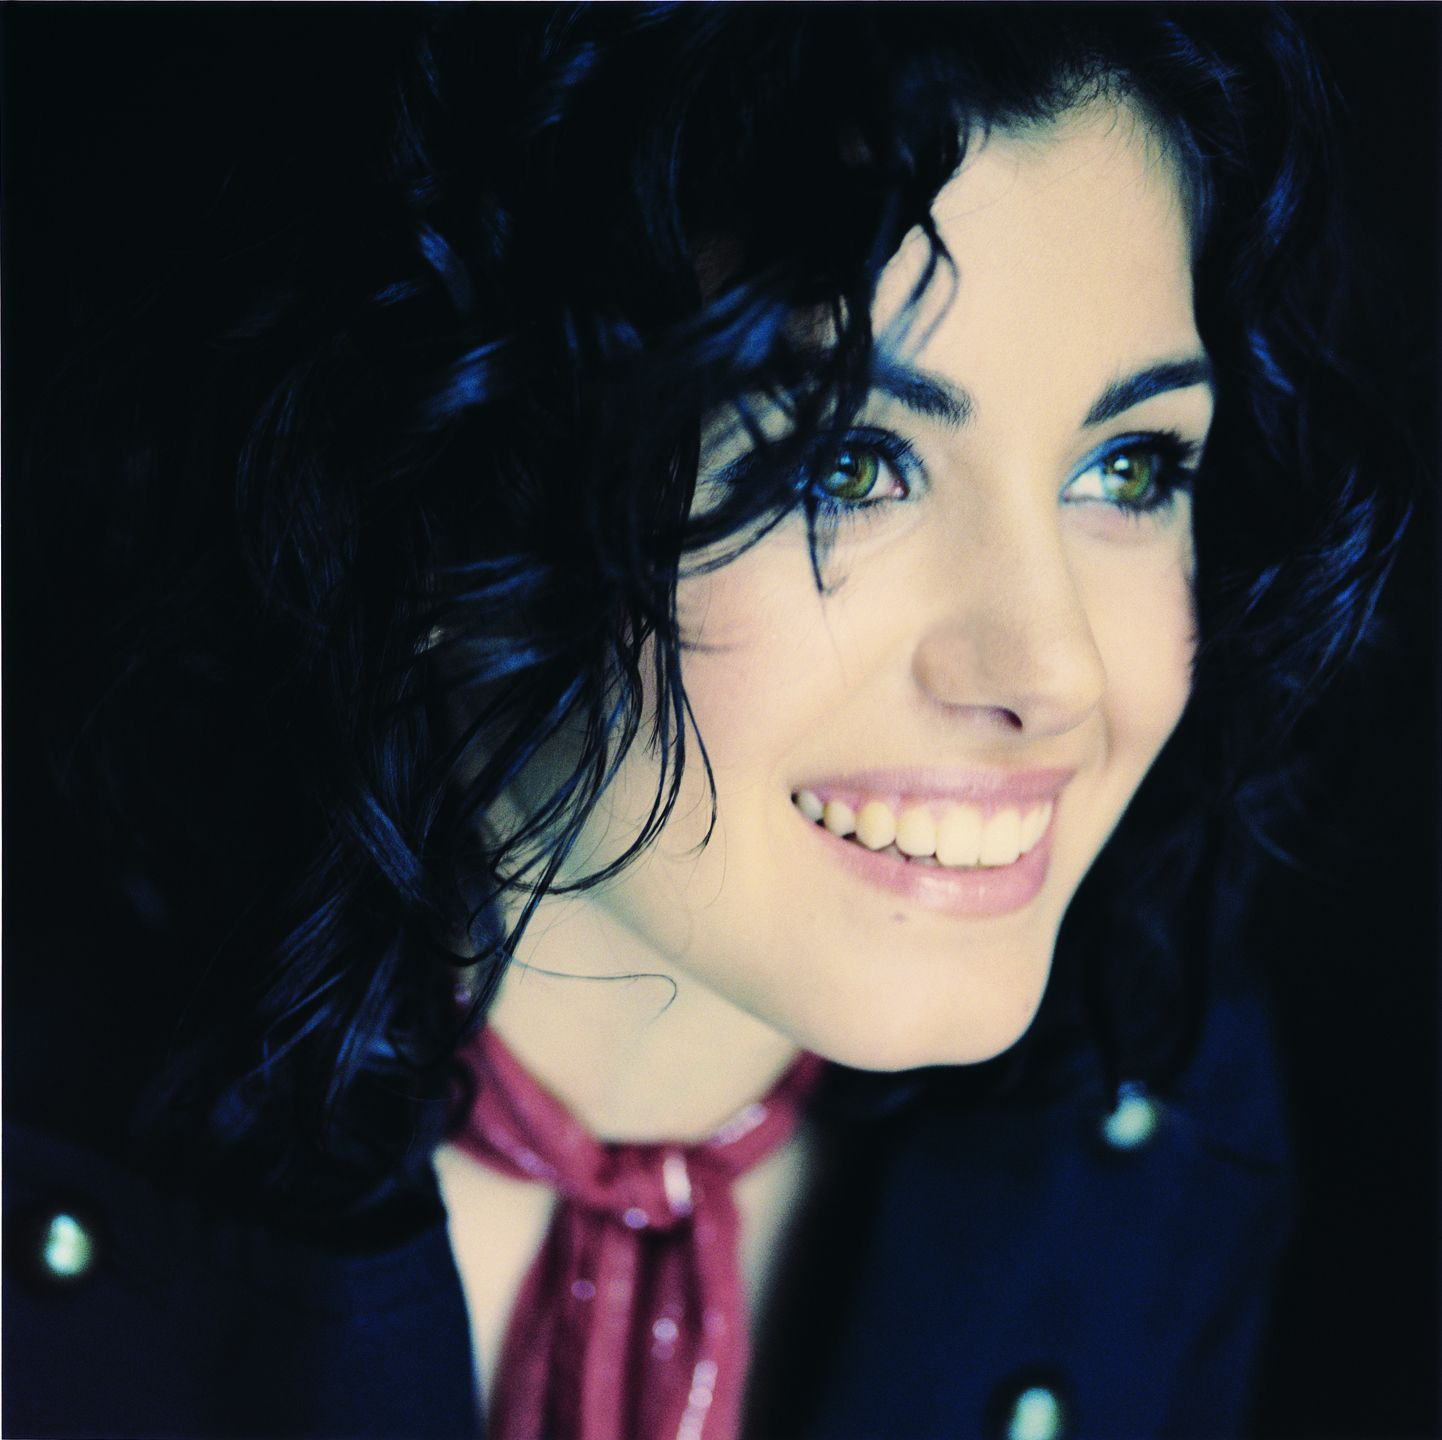 Katie Melua photo #24987